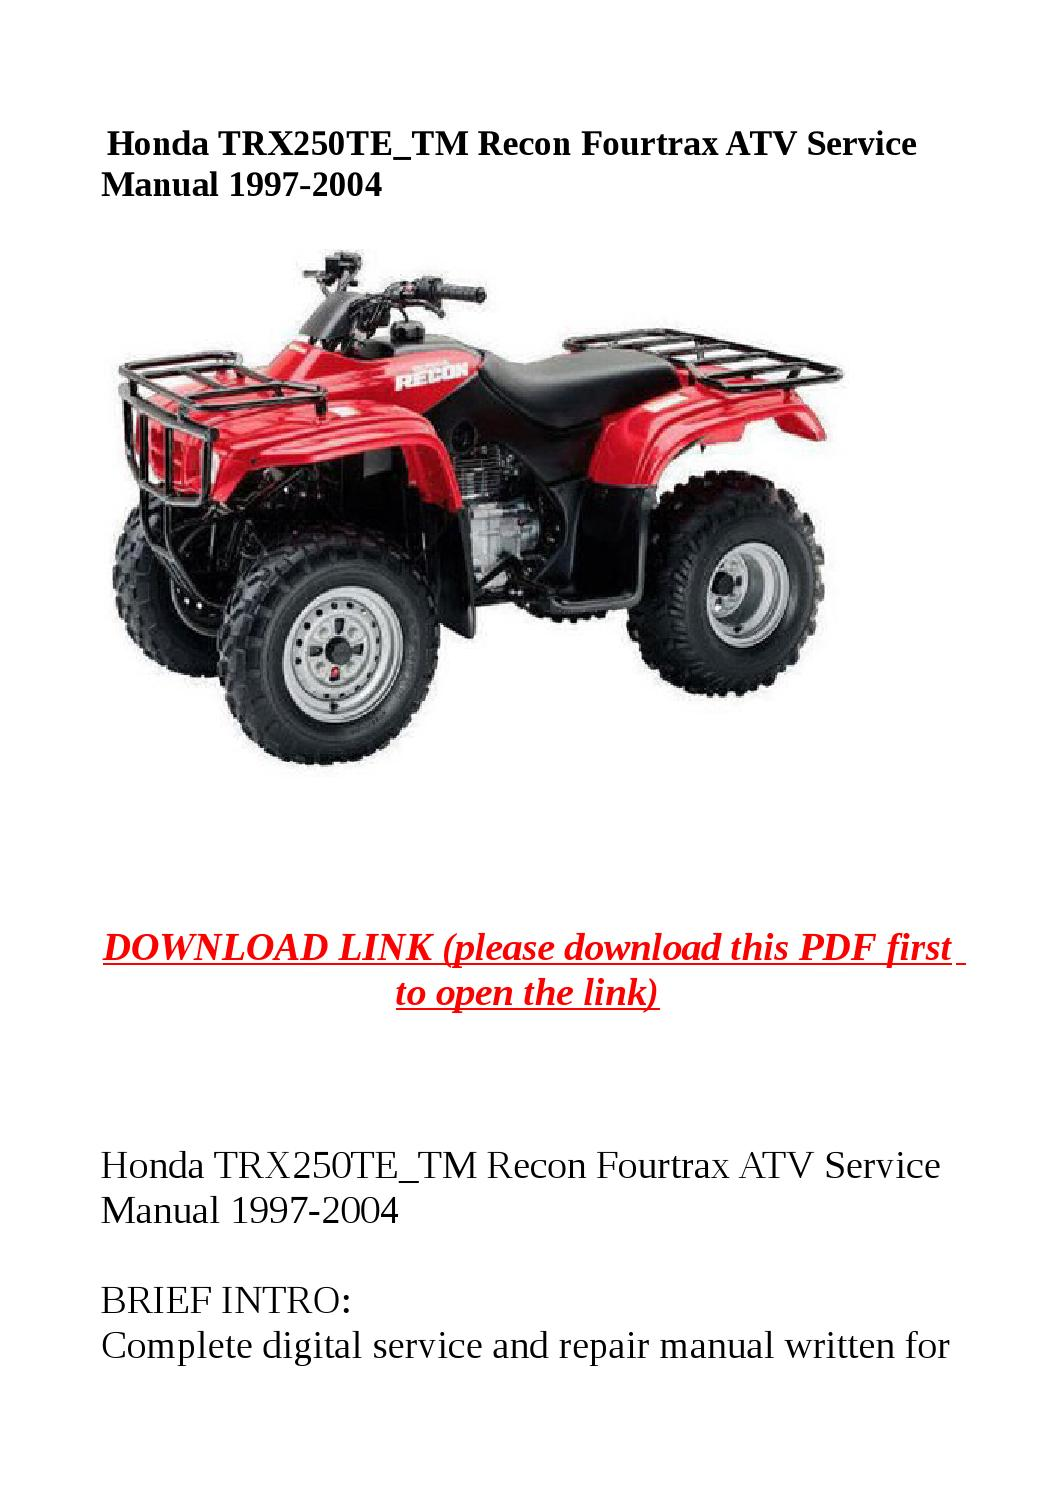 Honda trx250te tm recon fourtrax atv service manual 1997 2004 by yghj -  issuu